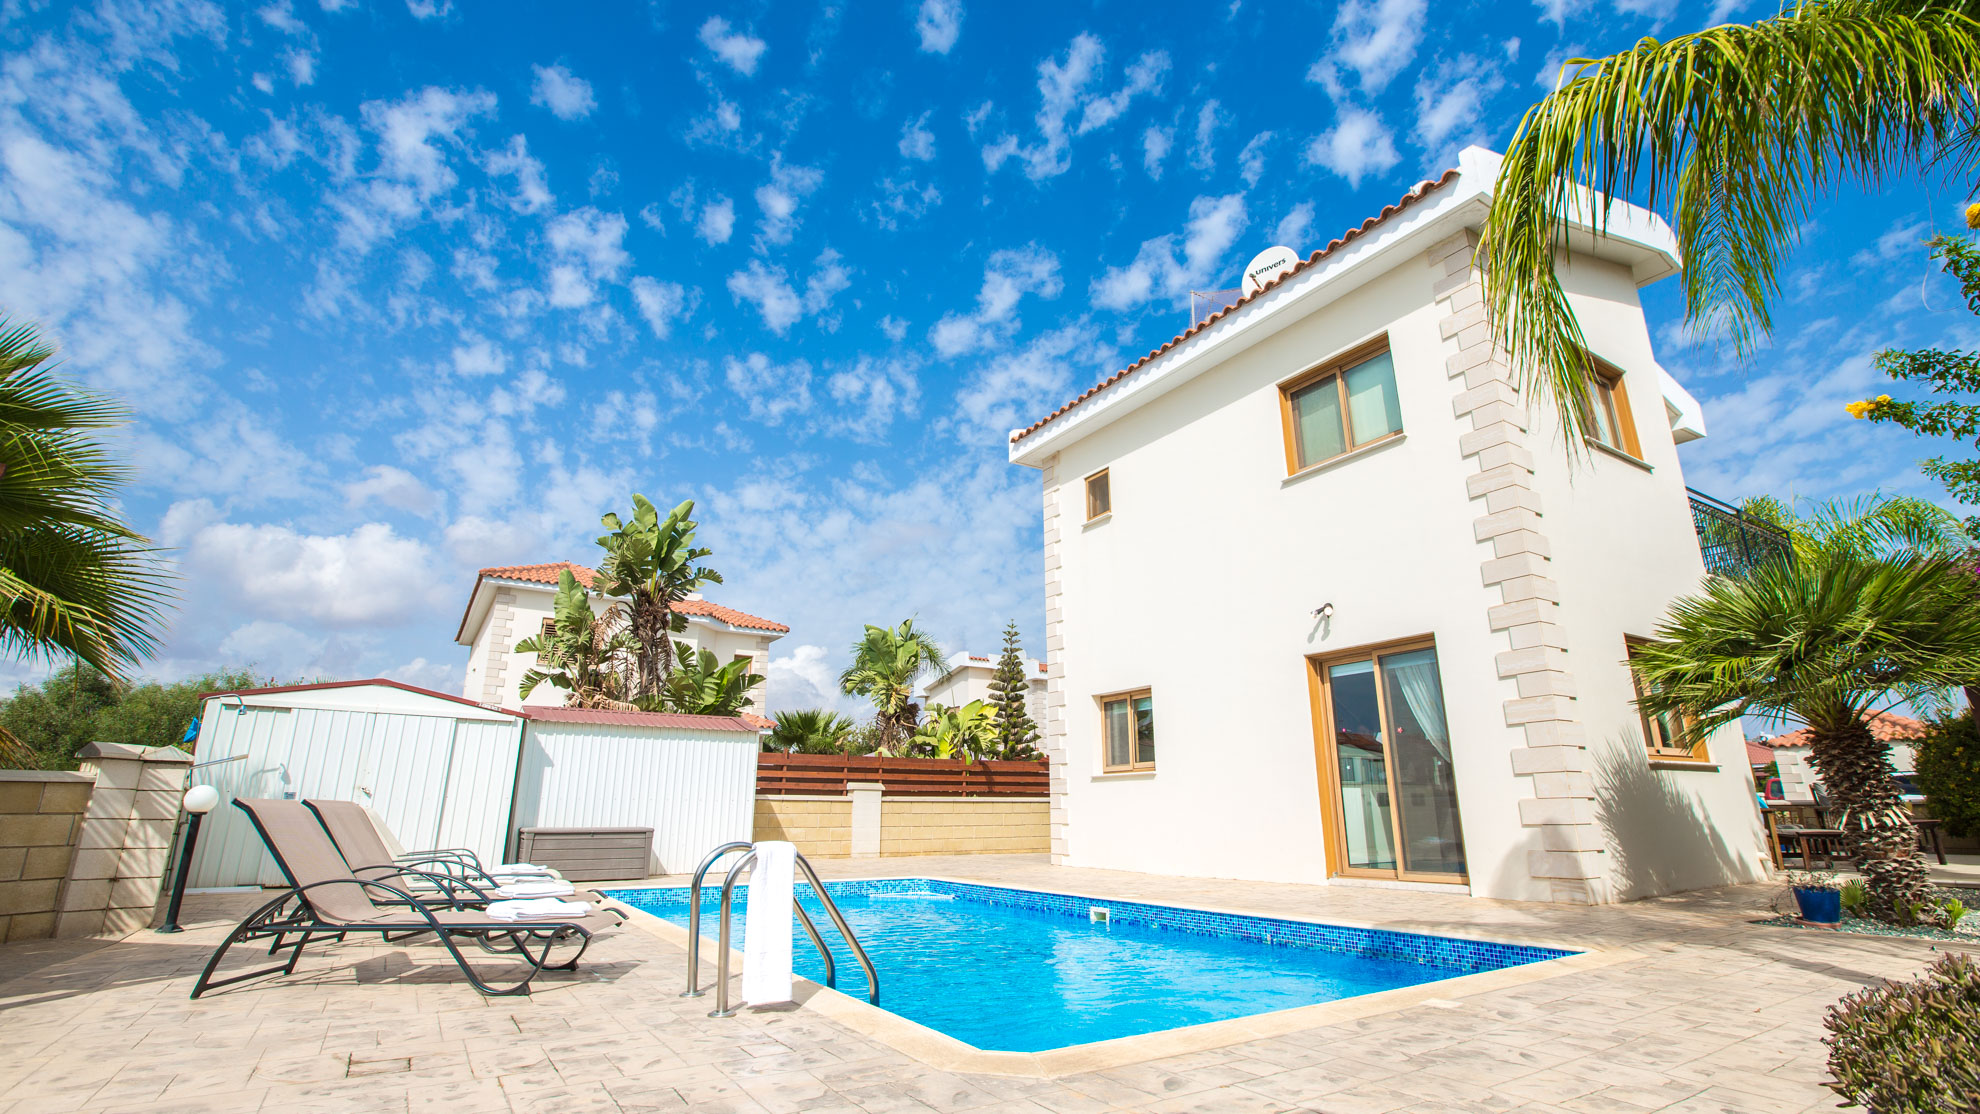 Apartment RENT your luxury PRIVATE VILLA 207 in Cyprus photo 28949307